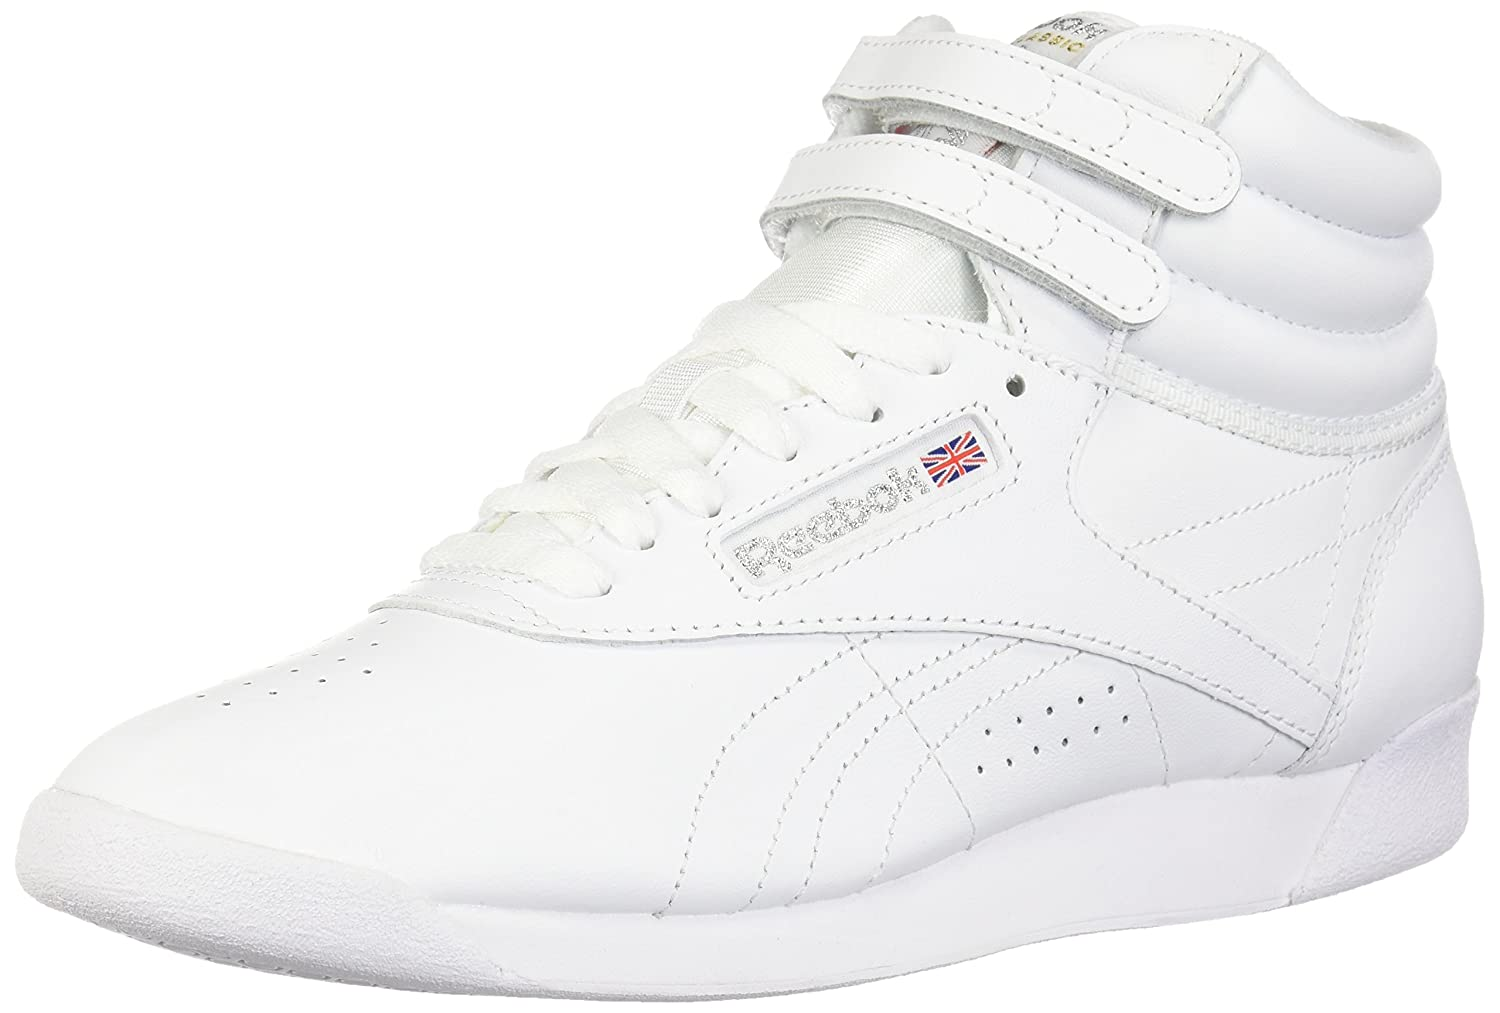 Reebok Women's Freestyle Hi Walking Shoe B0000ANC7J 6.5 B(M) US|White/Silver